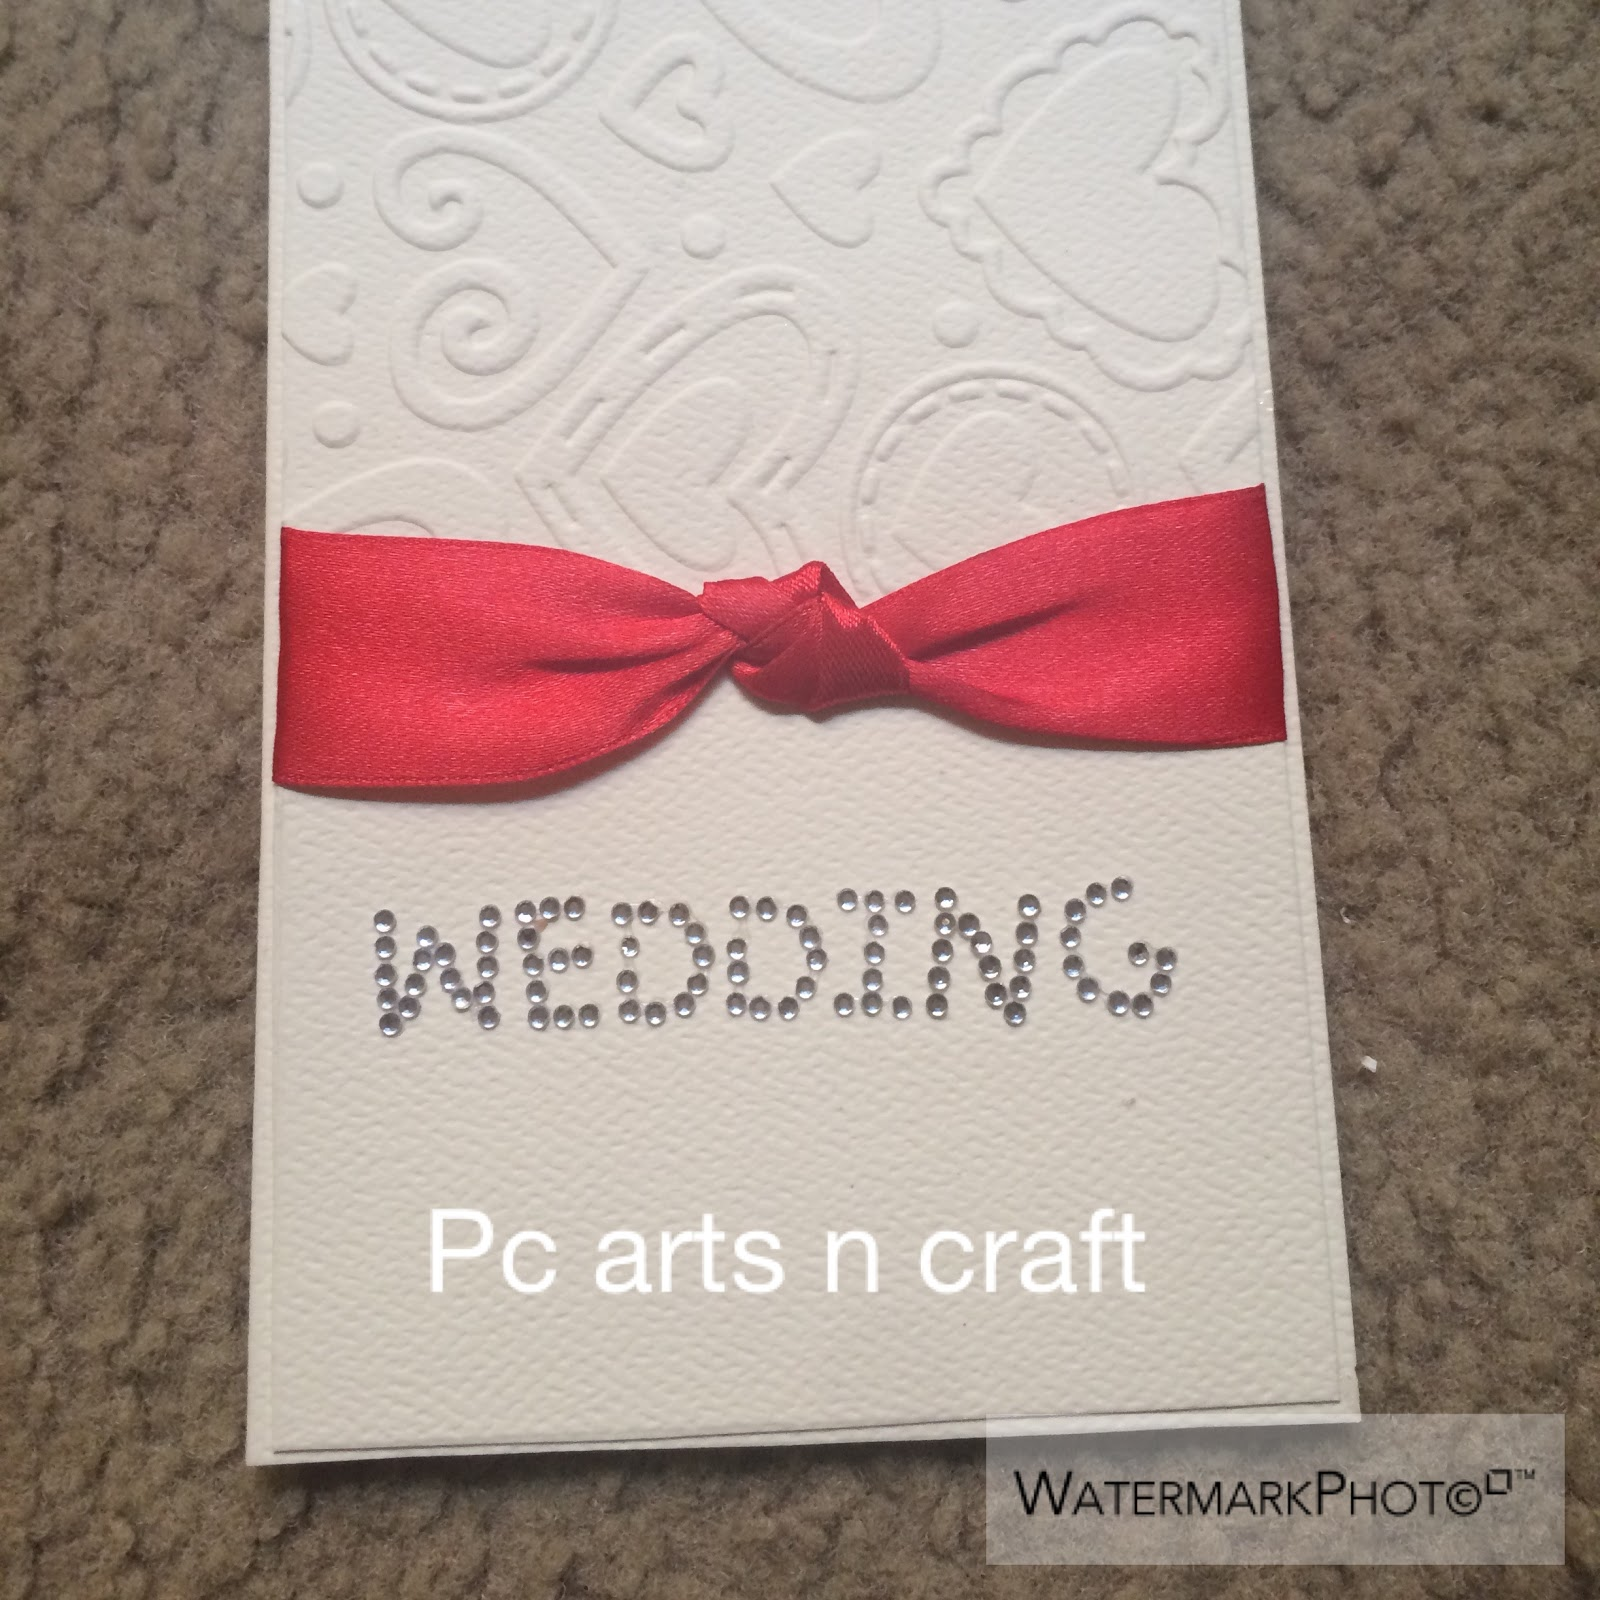 Handmade craft store: Collection of handmade wedding invitation